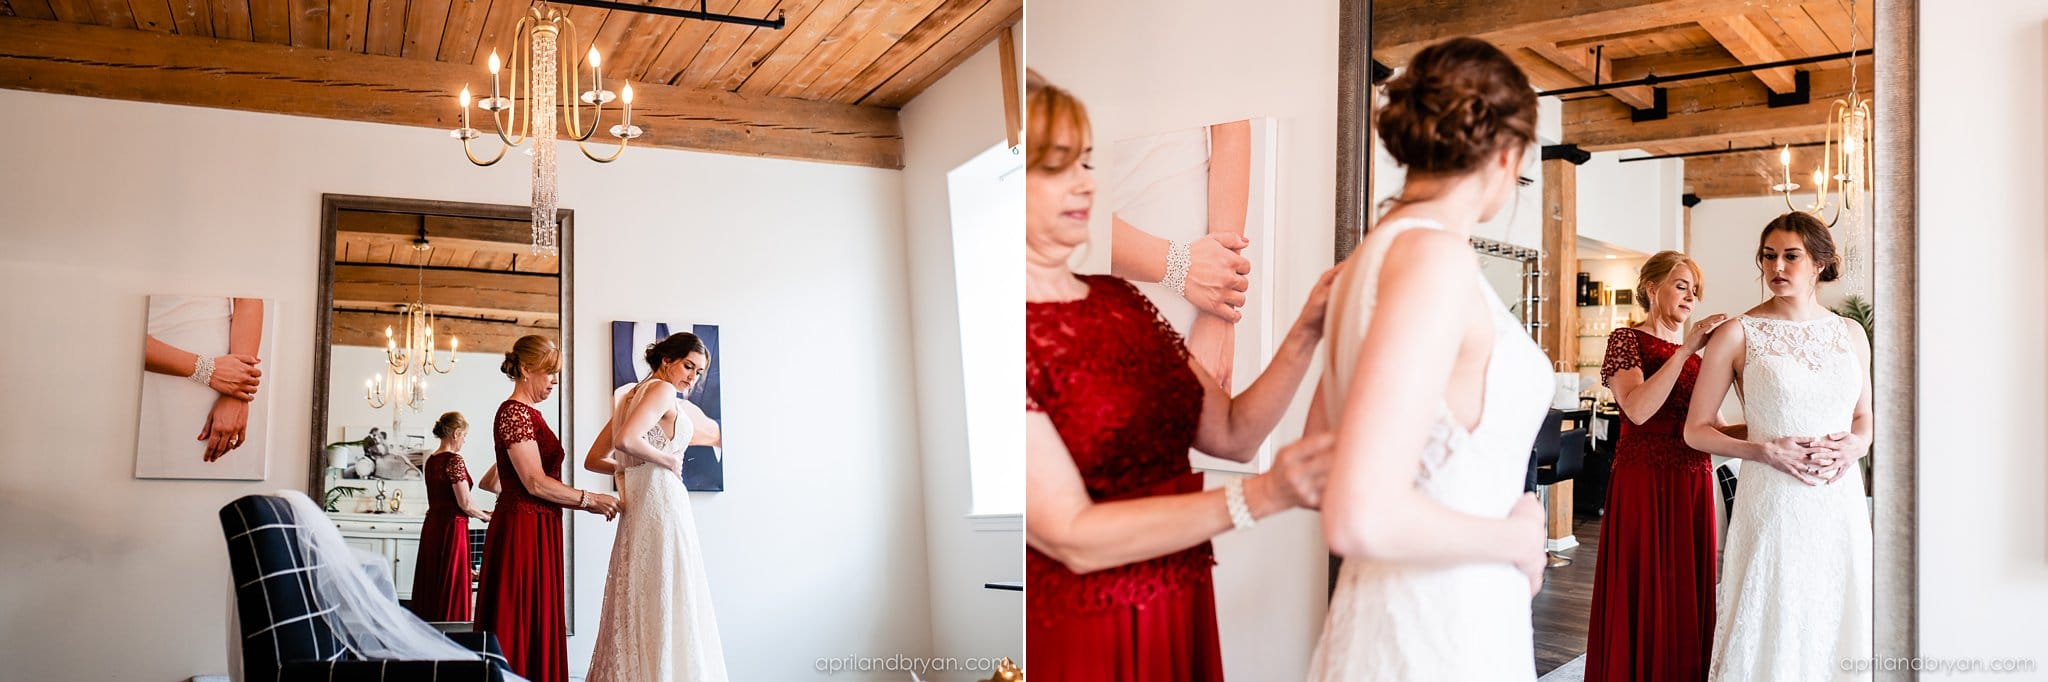 Cork Factory Lancaster Wedding Photographer